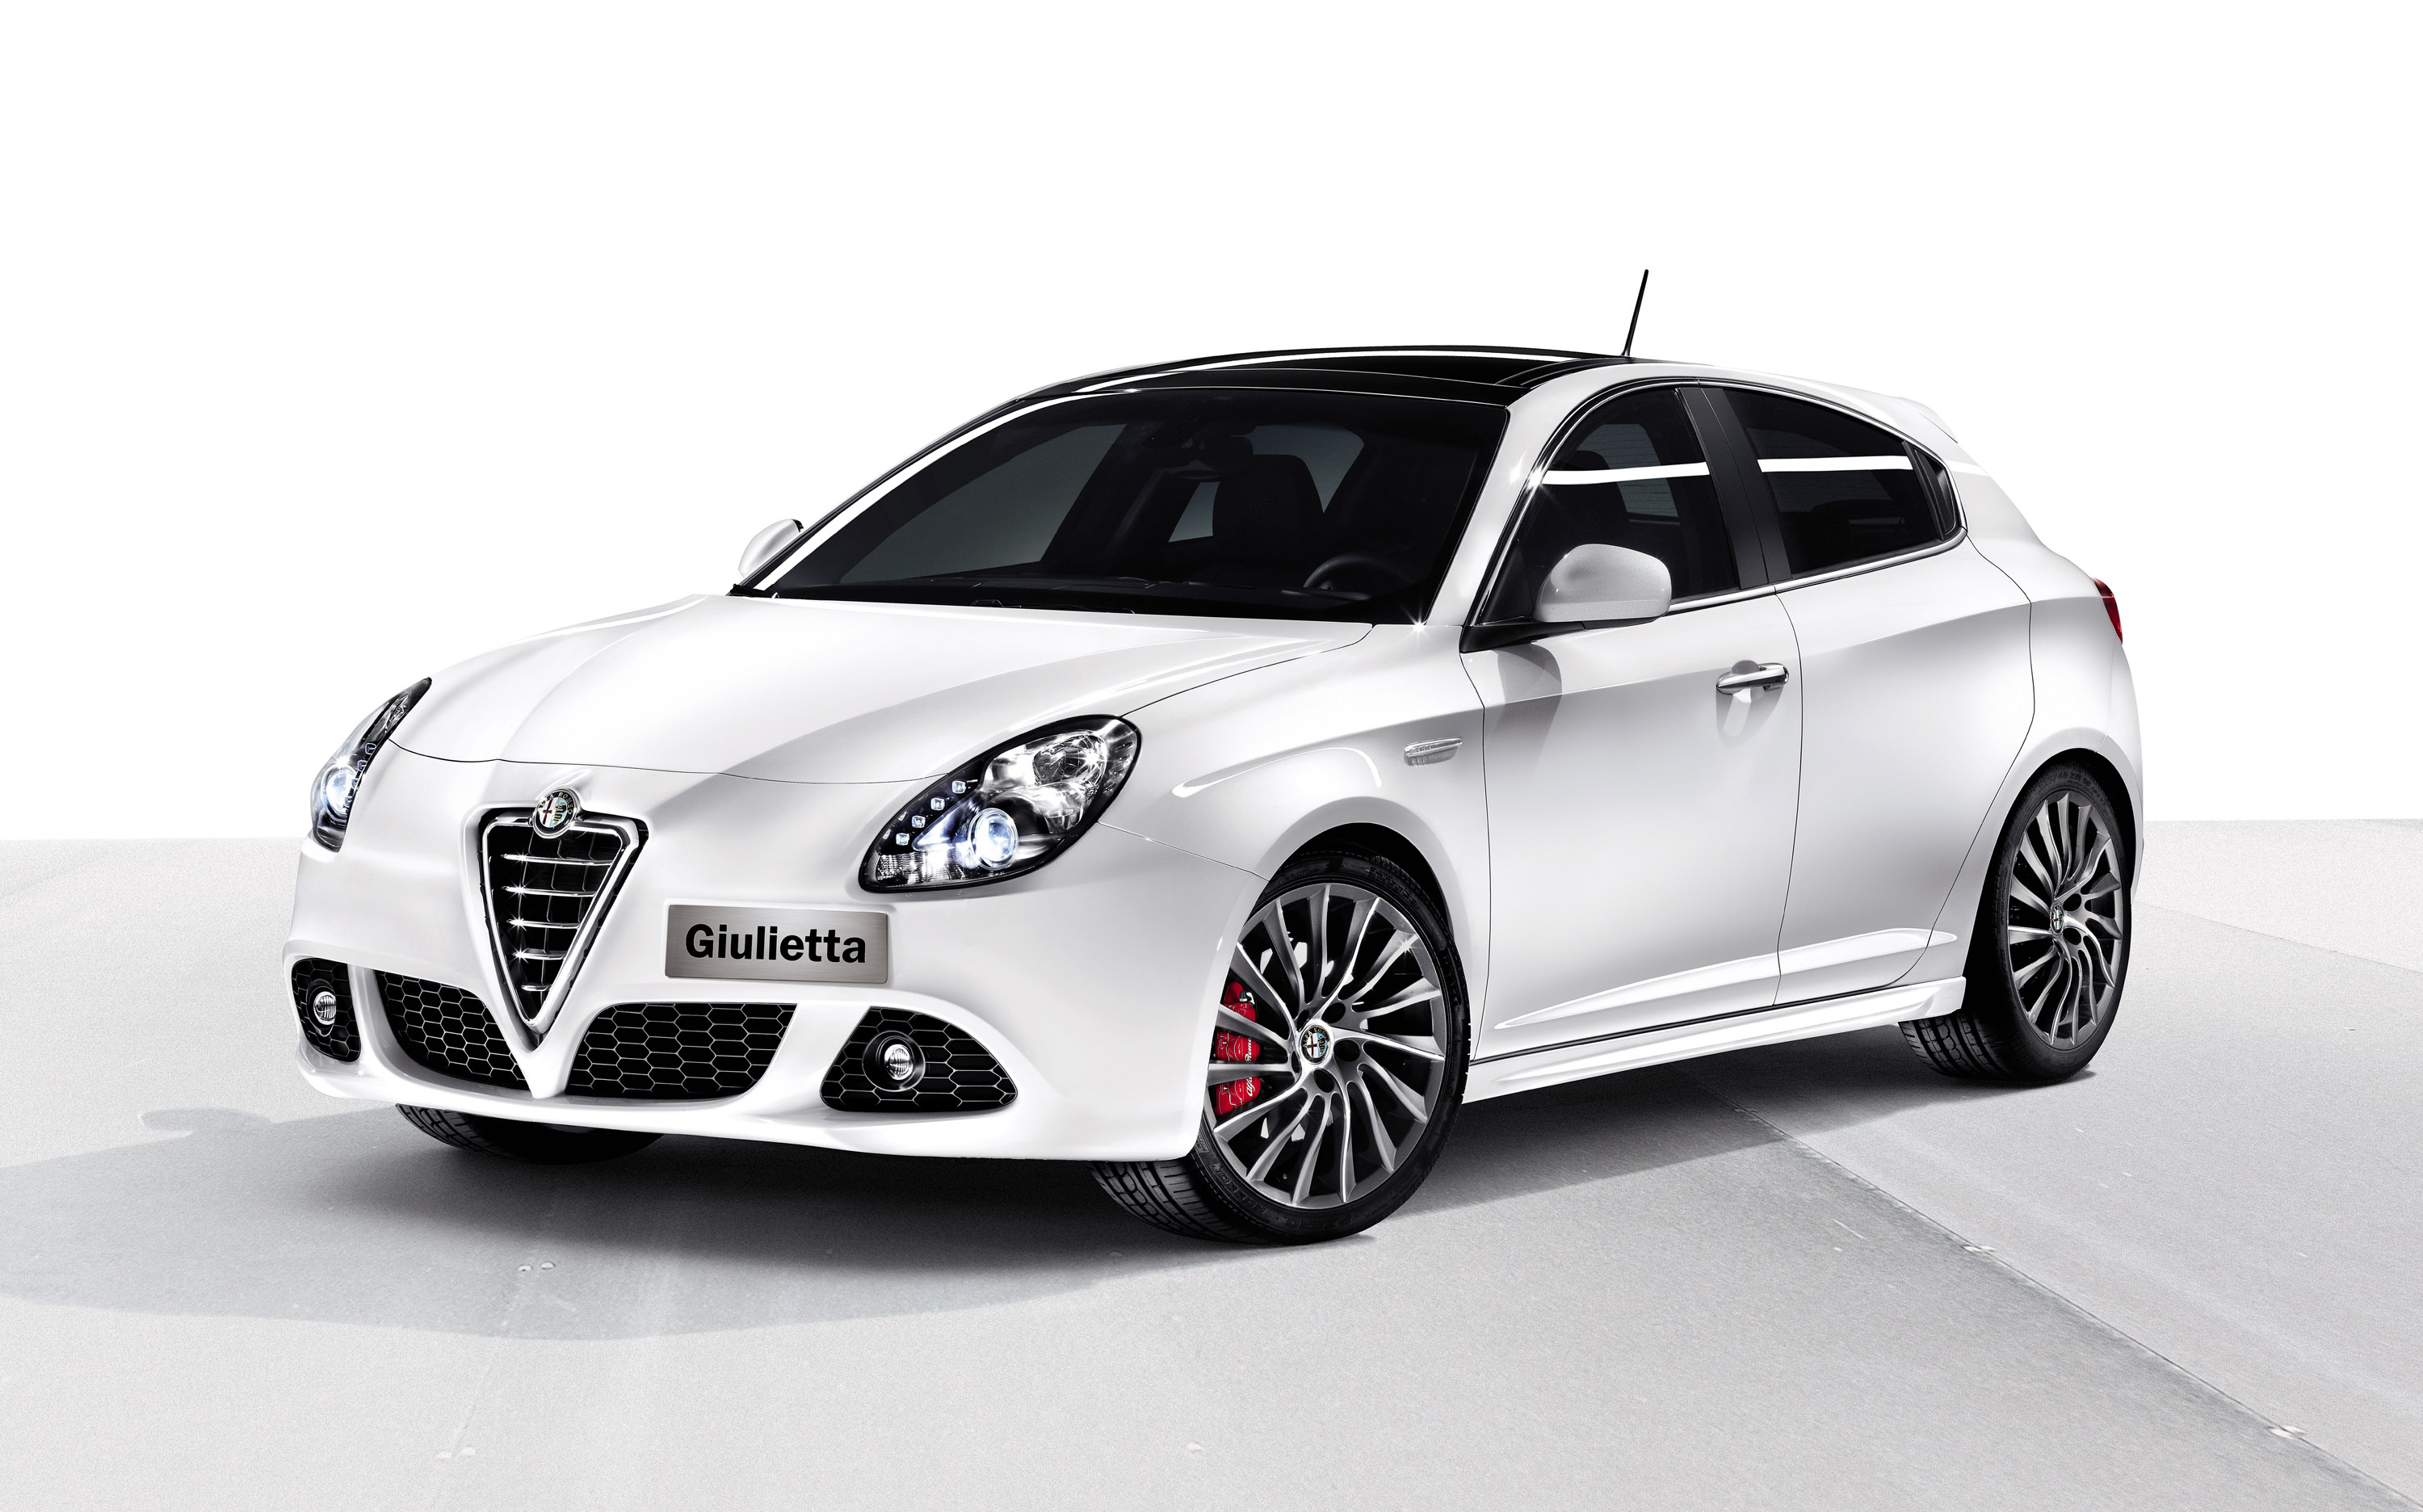 The Giulietta makes the Independent's '50 Best Cars' list | Johnsons